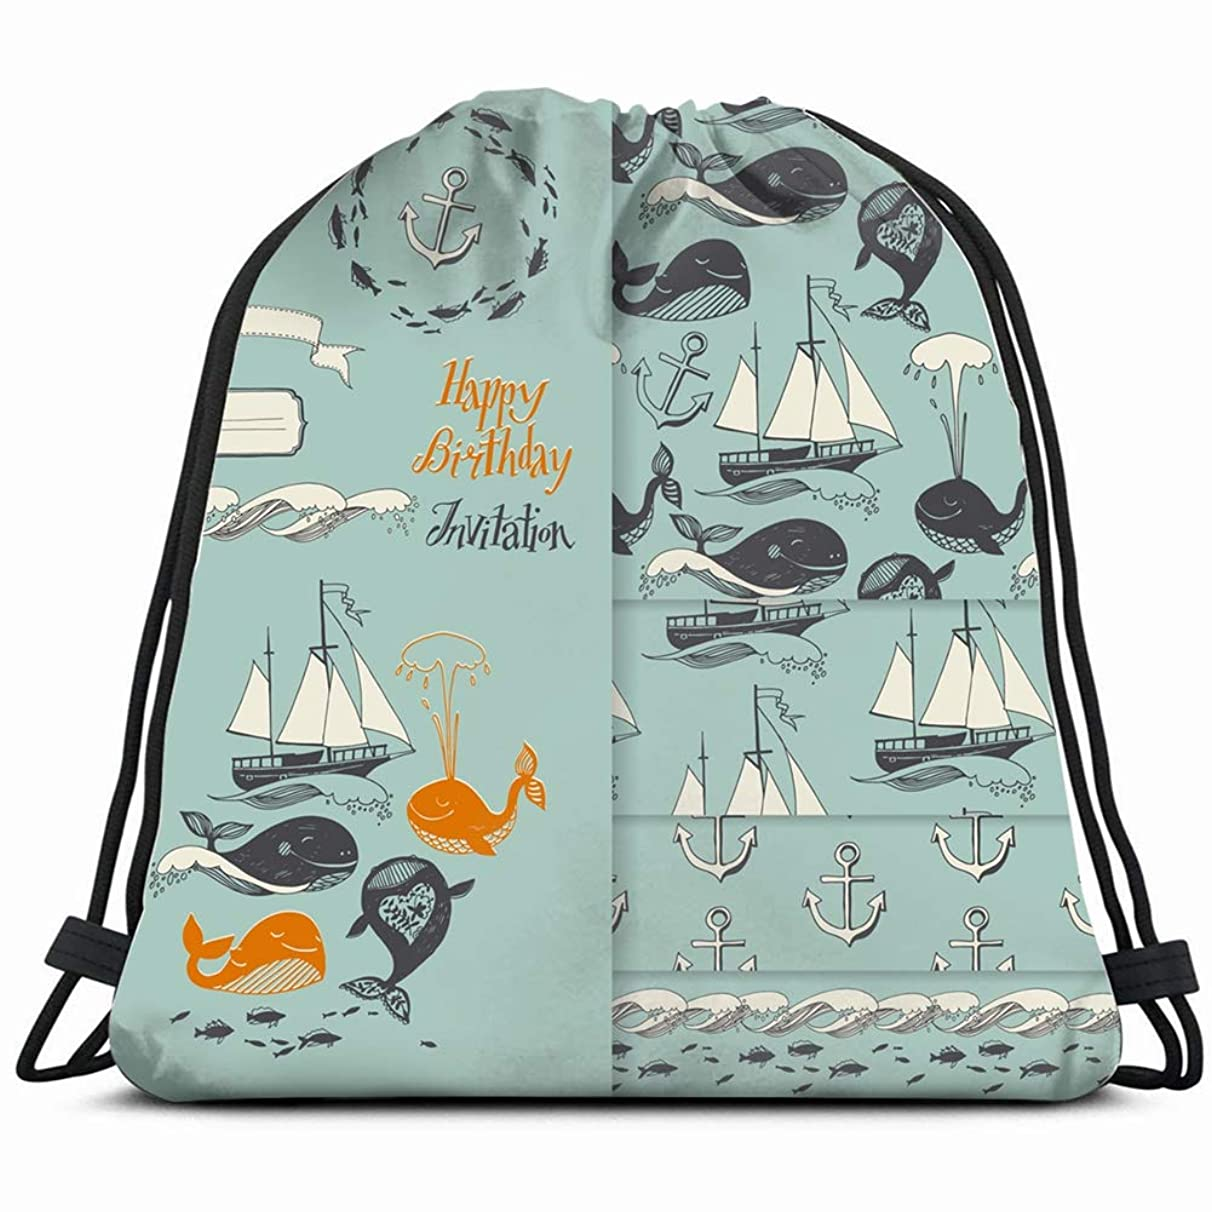 marine motifs yachts funny whales animals wildlife baby transportation Drawstring Backpack Gym Sack Lightweight Bag Water Resistant Gym Backpack for Women&Men for Sports,Travelling,Hiking,Camping,Shop